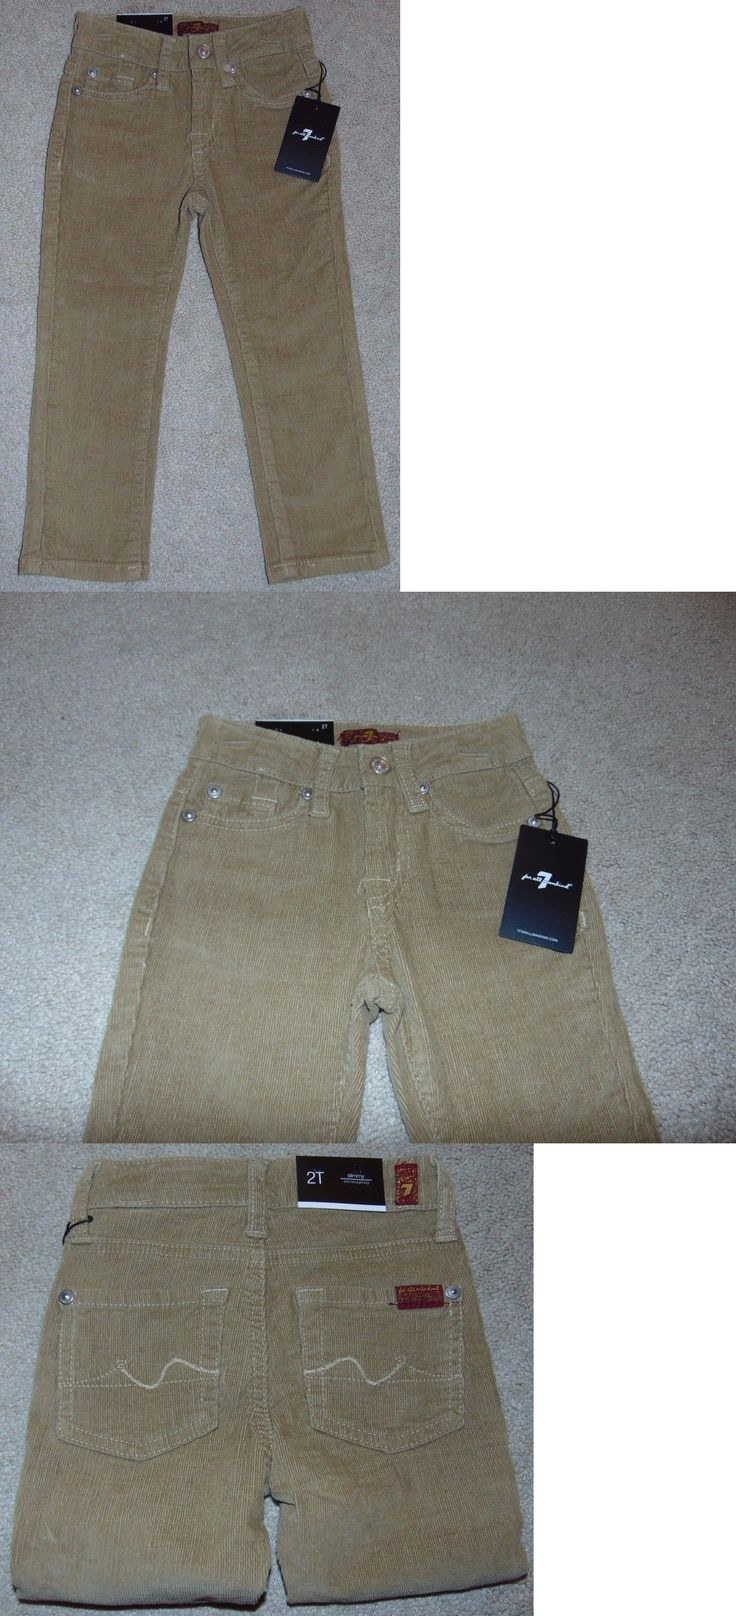 Bottoms 57793: ~Nwt Boys 7 For All Man Kind Corduroy Skinny Pants W Adw! Size 2T Cute Fs $59:)~ -> BUY IT NOW ONLY: $32.95 on eBay!